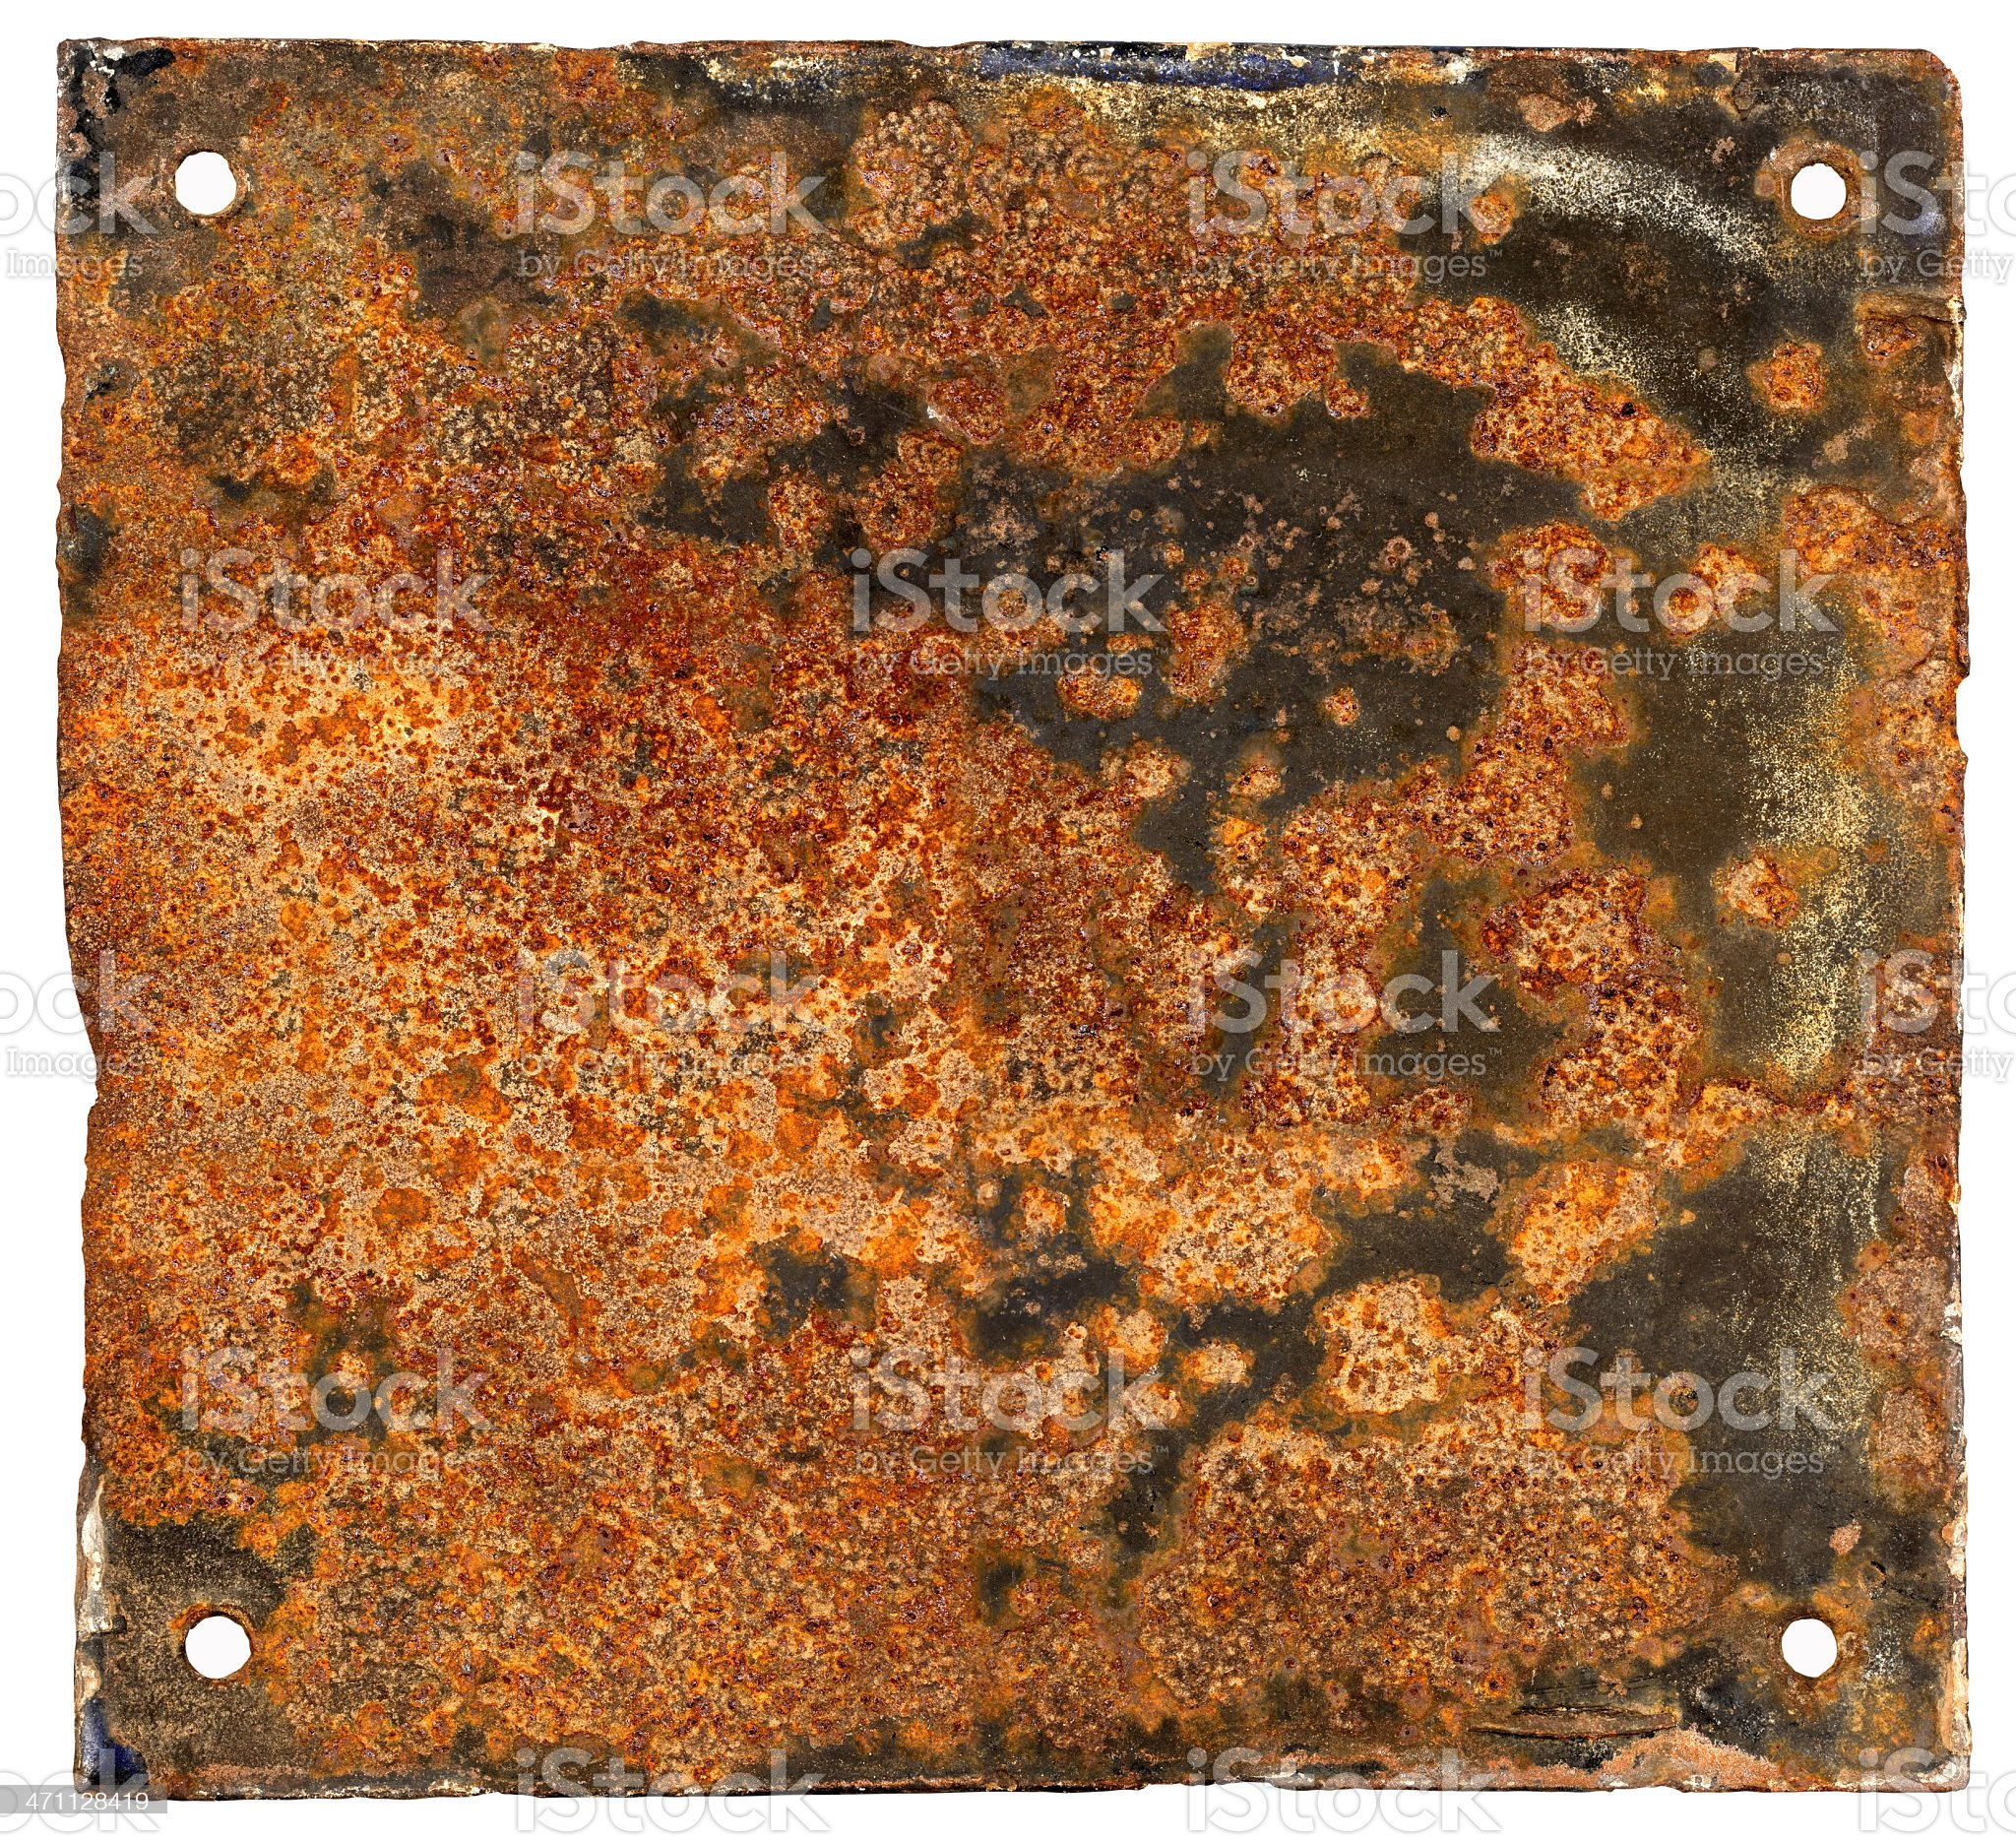 Rusty metal sign royalty-free stock photo